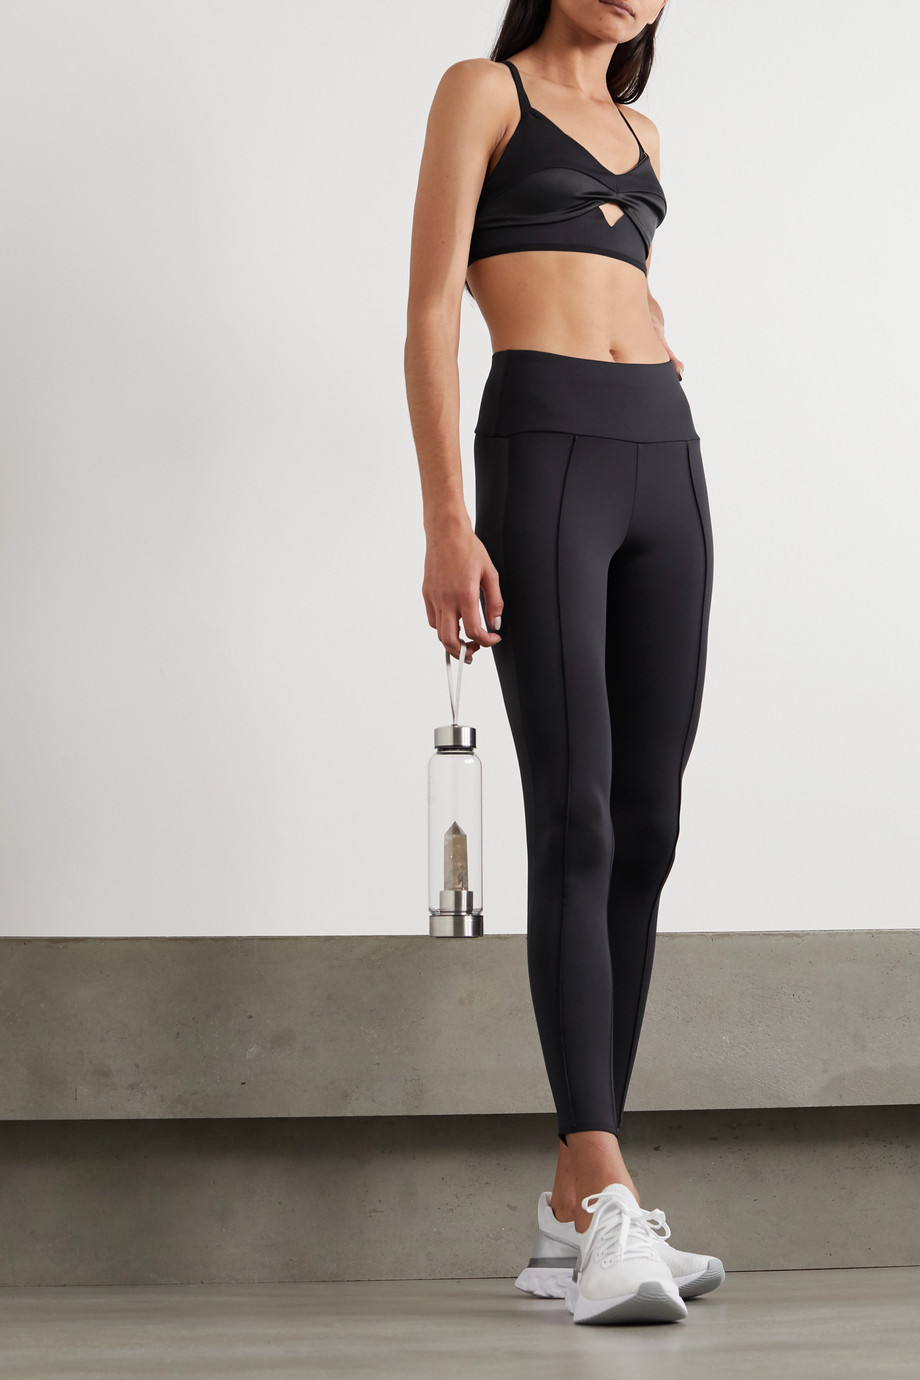 Vaara Nica satin-trimmed stretch leggings